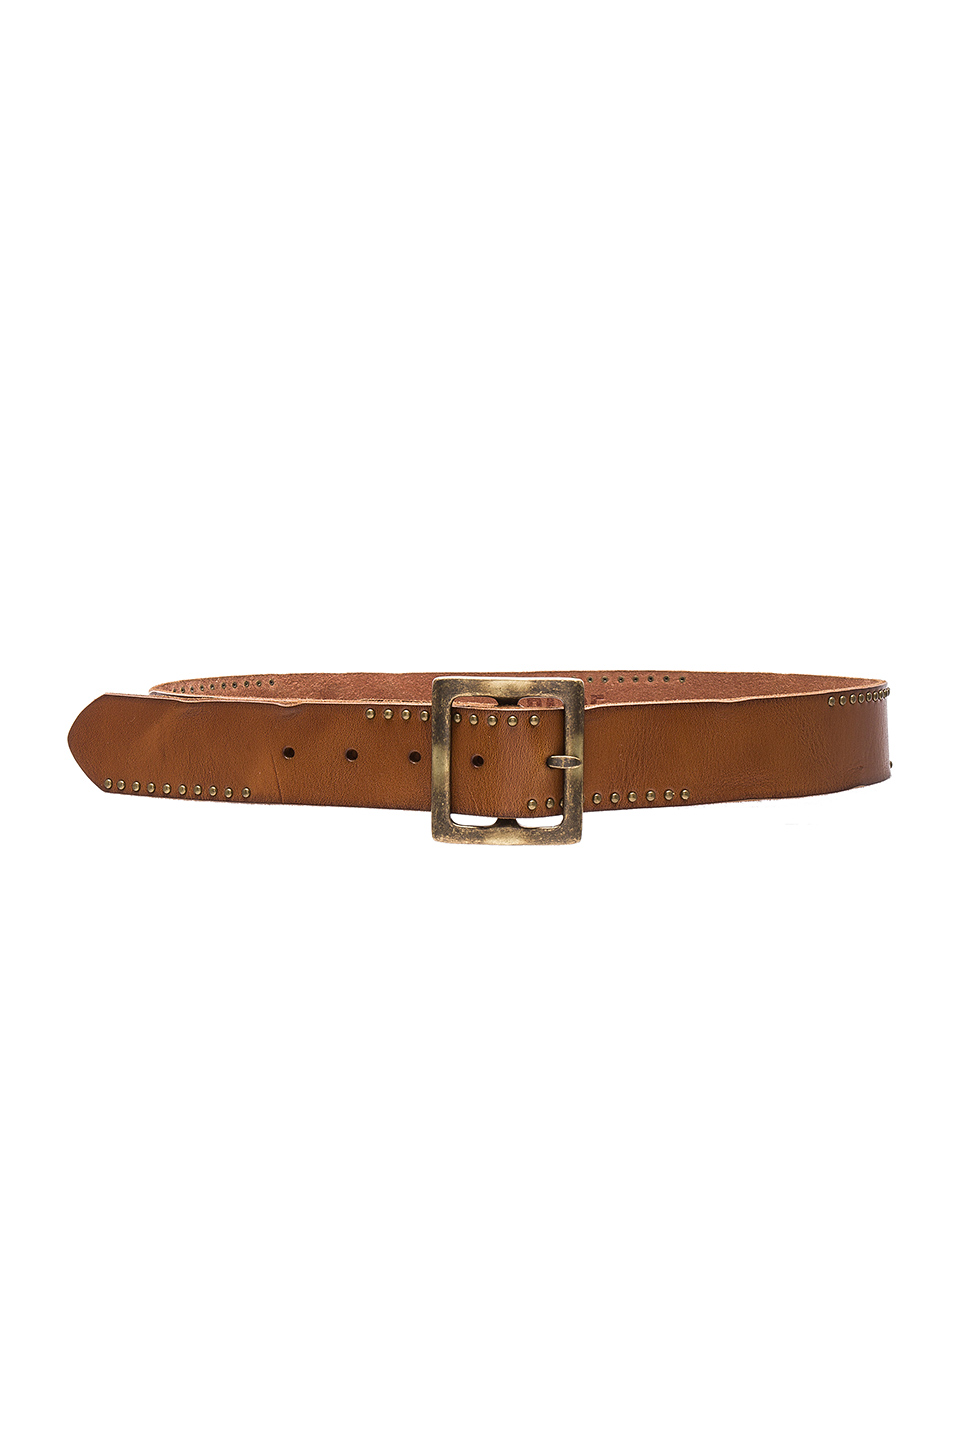 PAIGE Jenine Belt in Tan